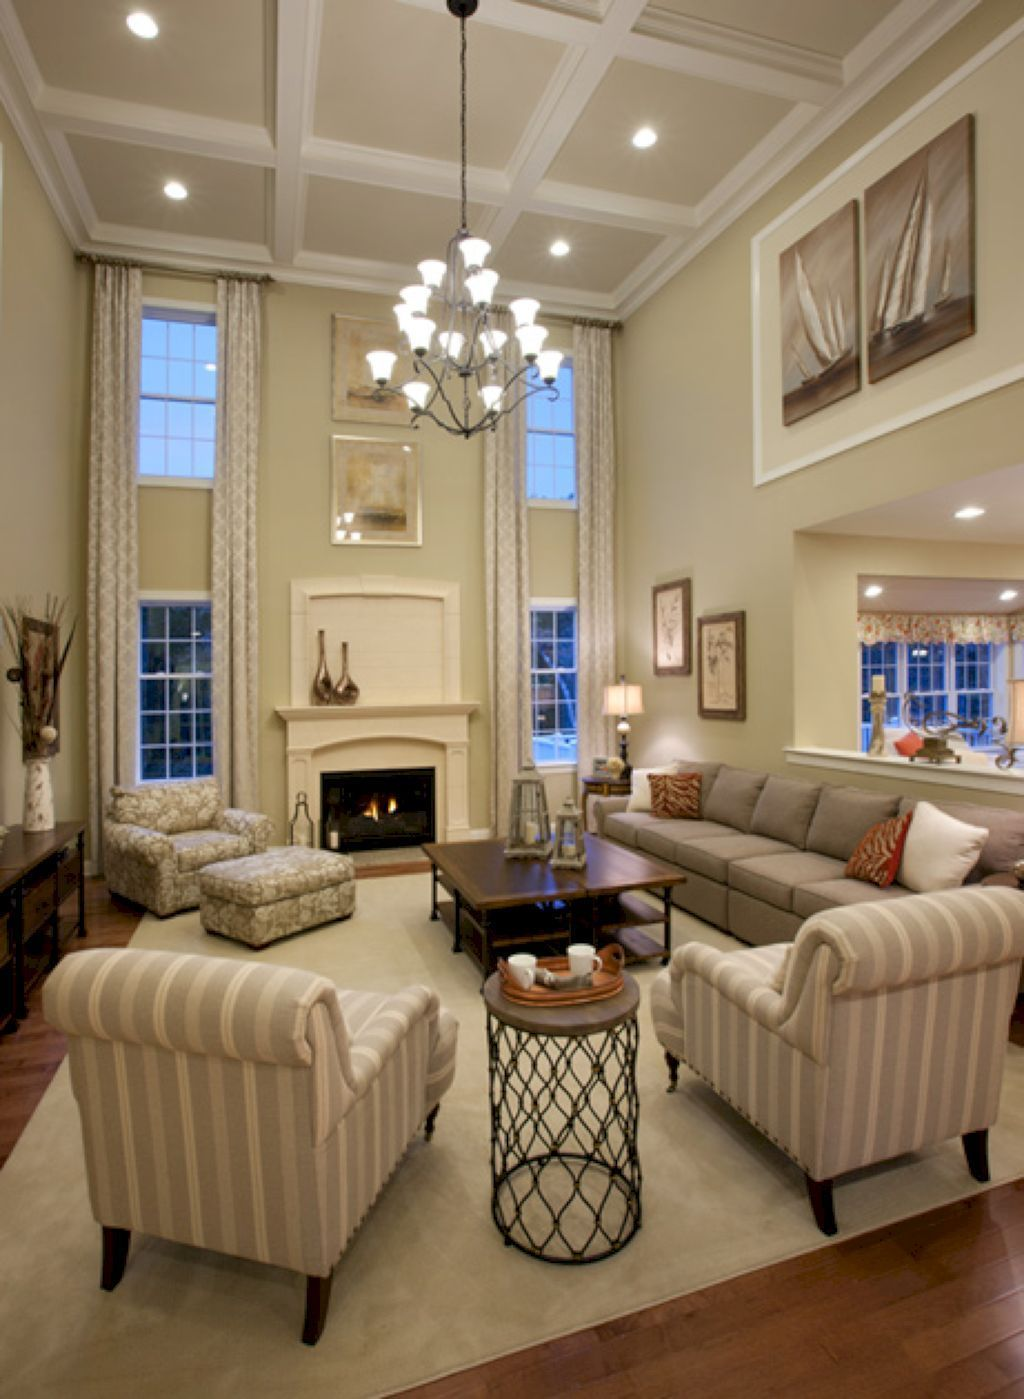 48 Amazing Wooden Ceiling Design High Ceiling Living Room